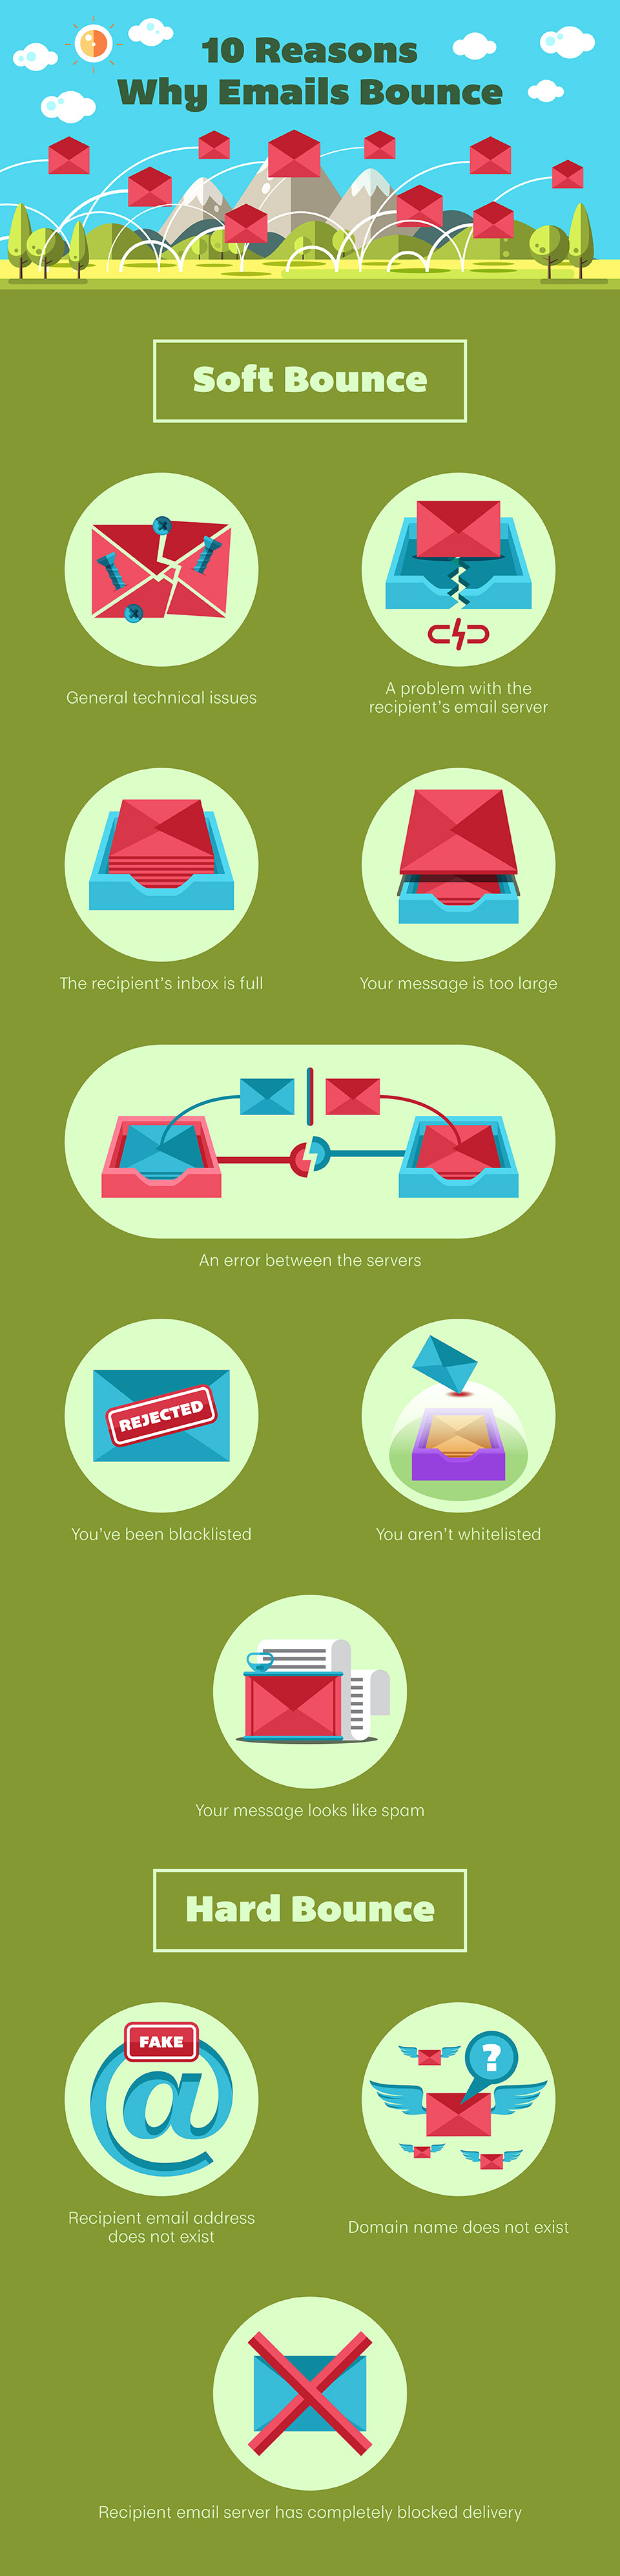 10-reasons-why-emails-bounce-infographic